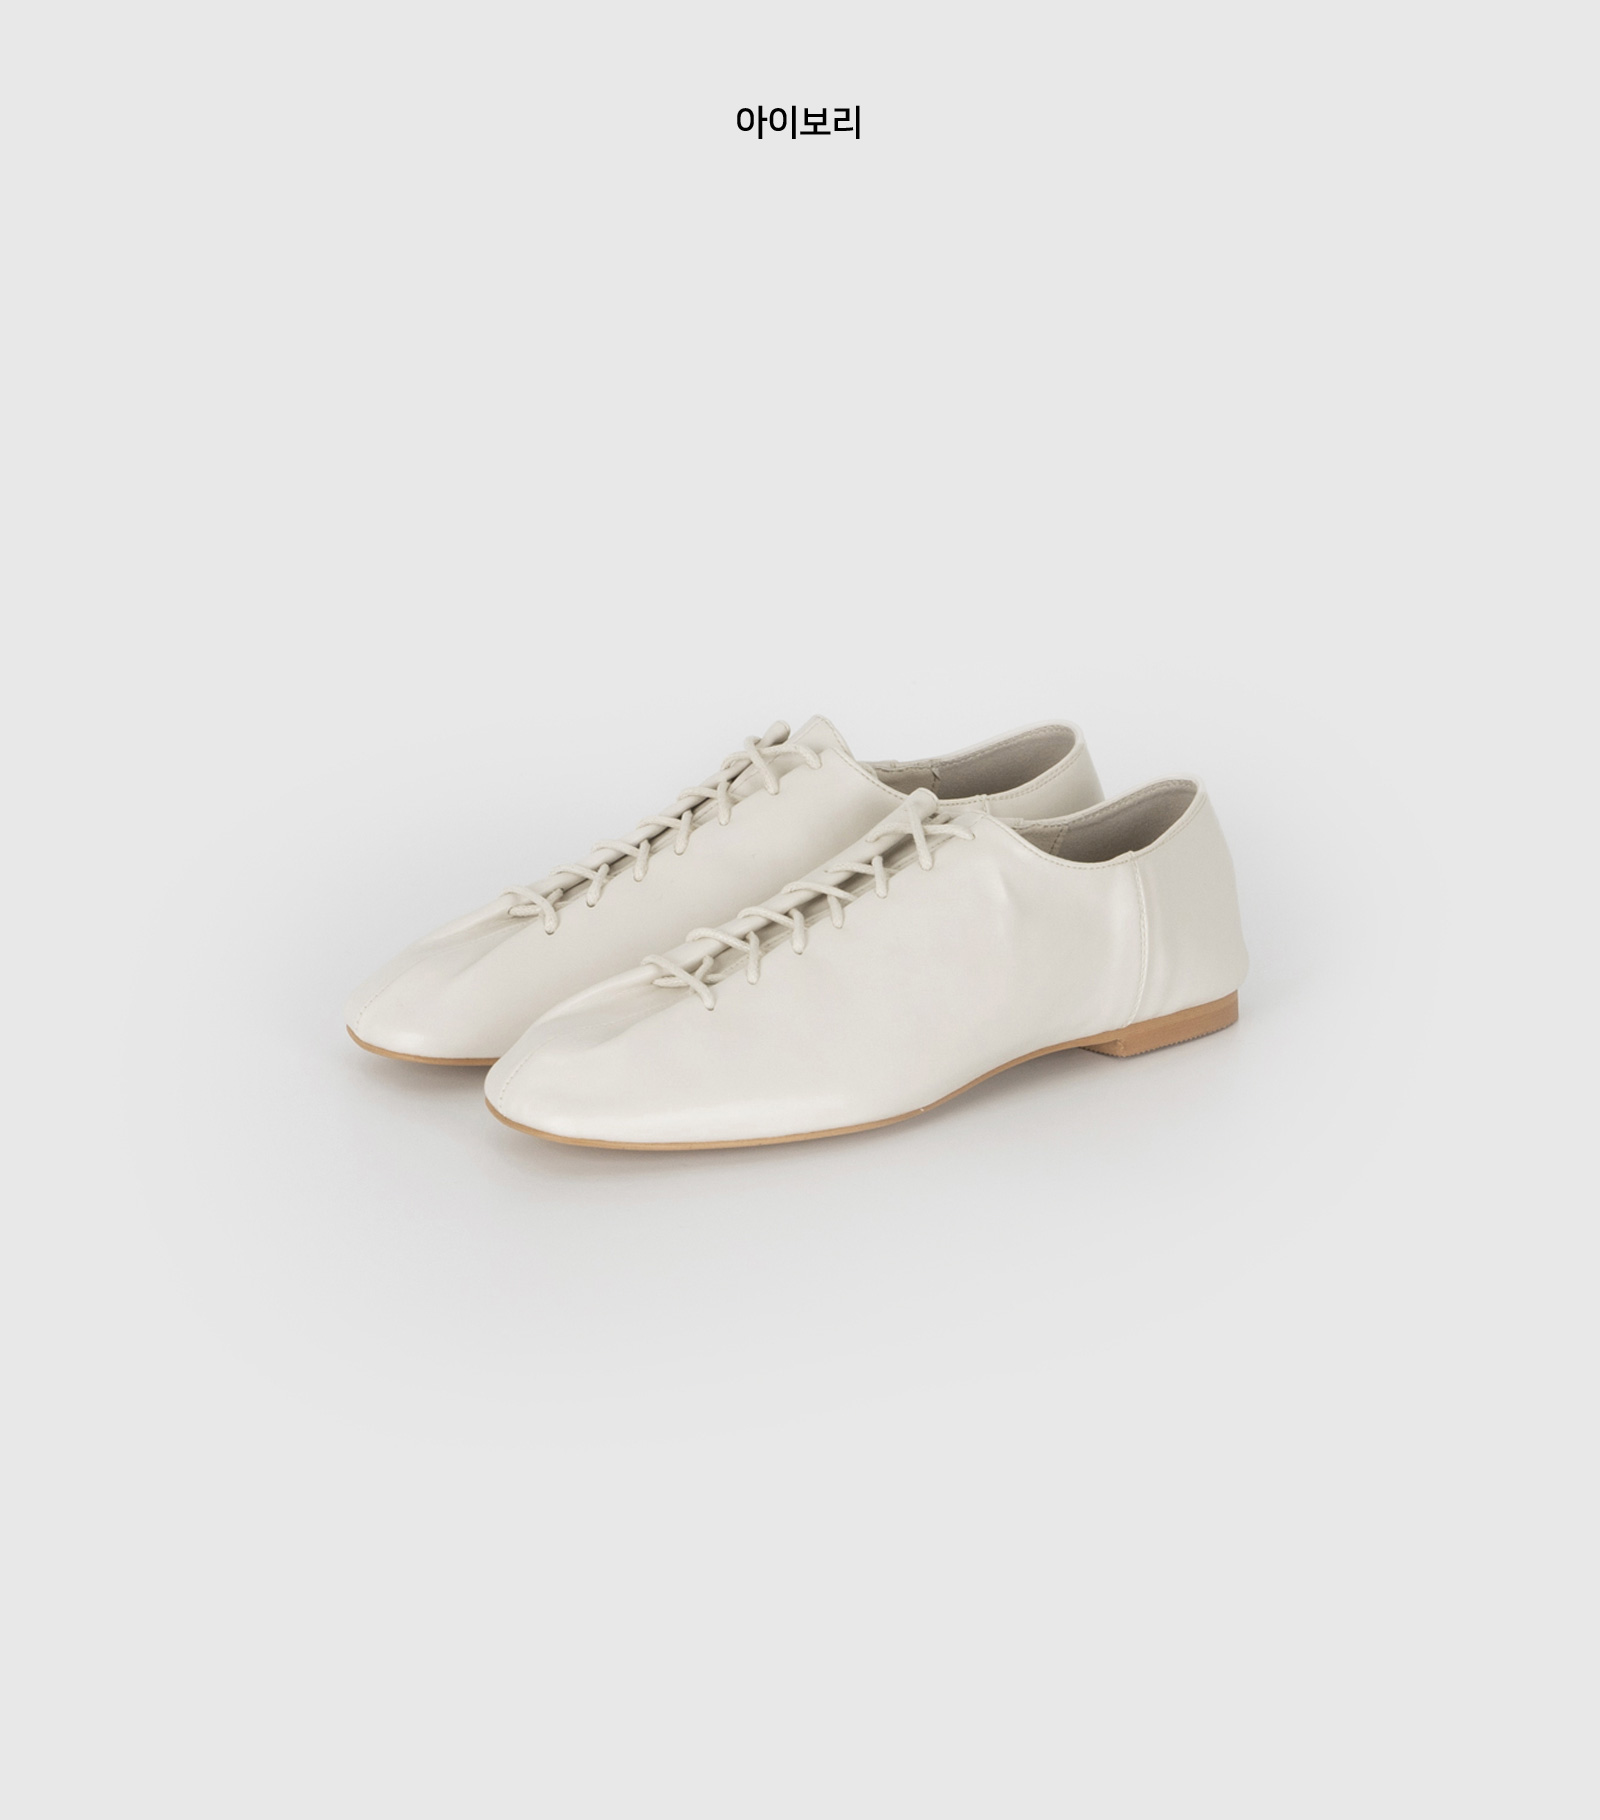 Lace-up two-way flat shoes